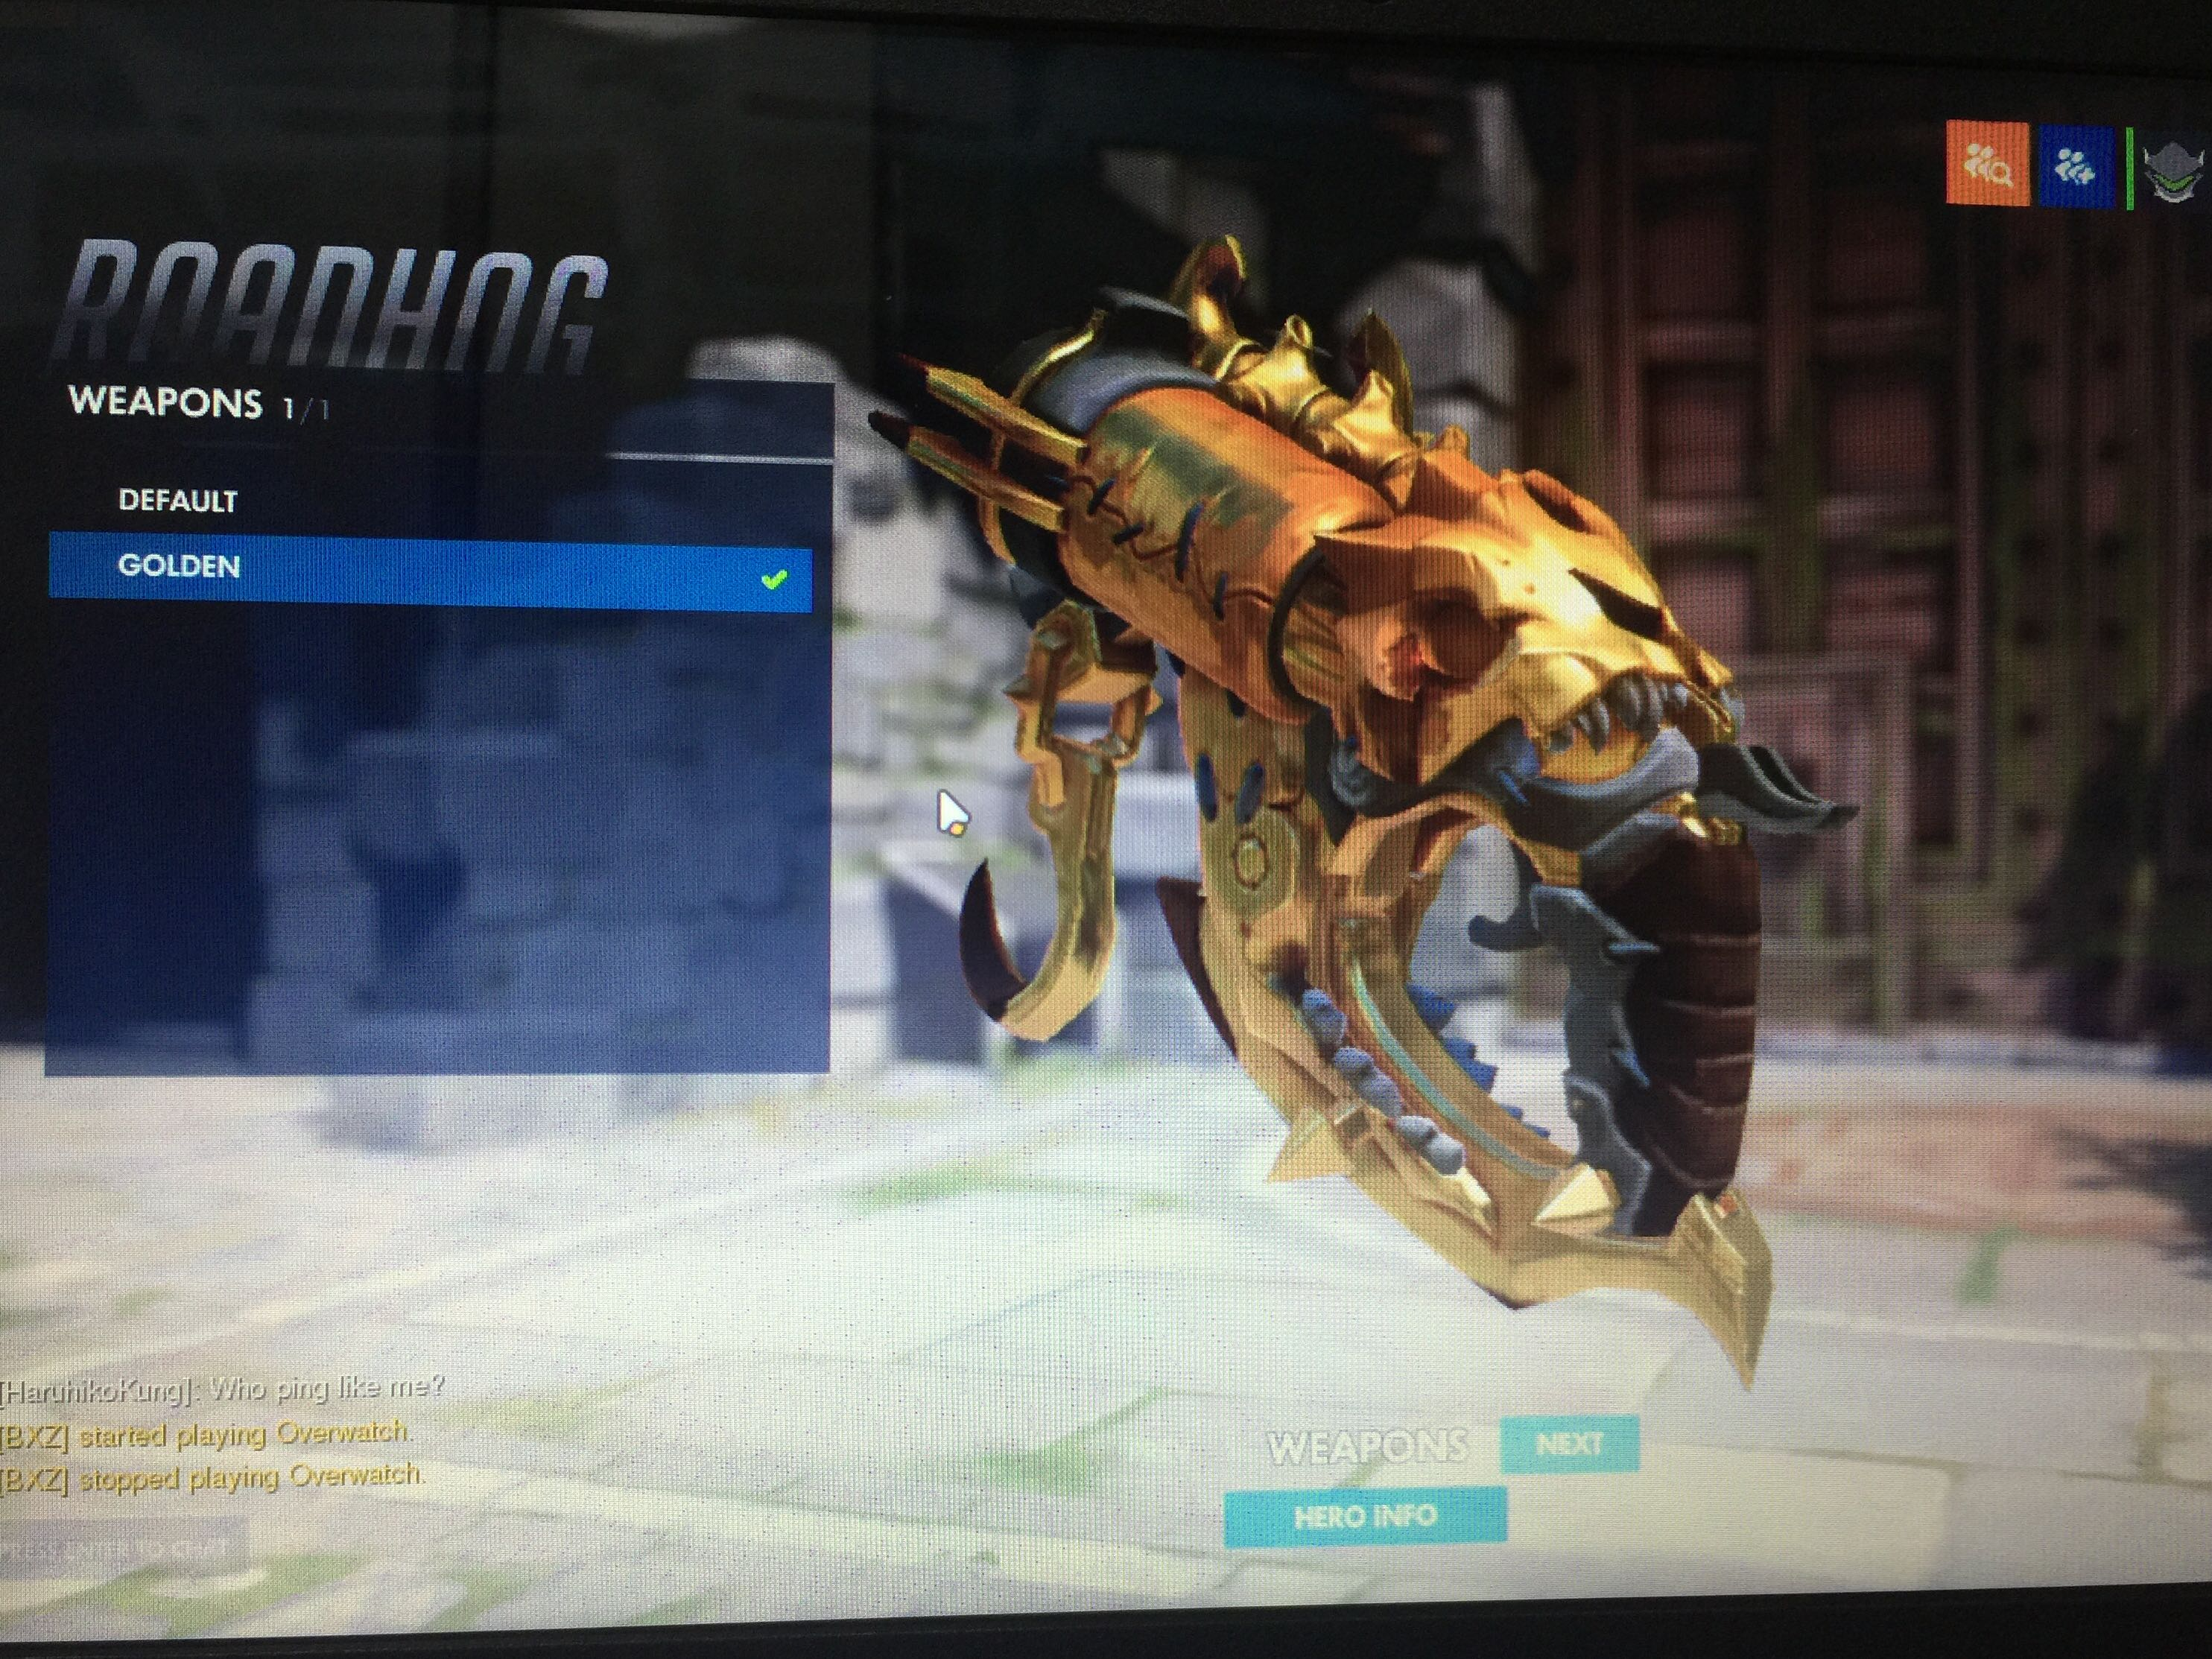 Overwatch Gold-Diamond Acc, Toys & Games, Video Gaming, In-Game Products on  Carousell